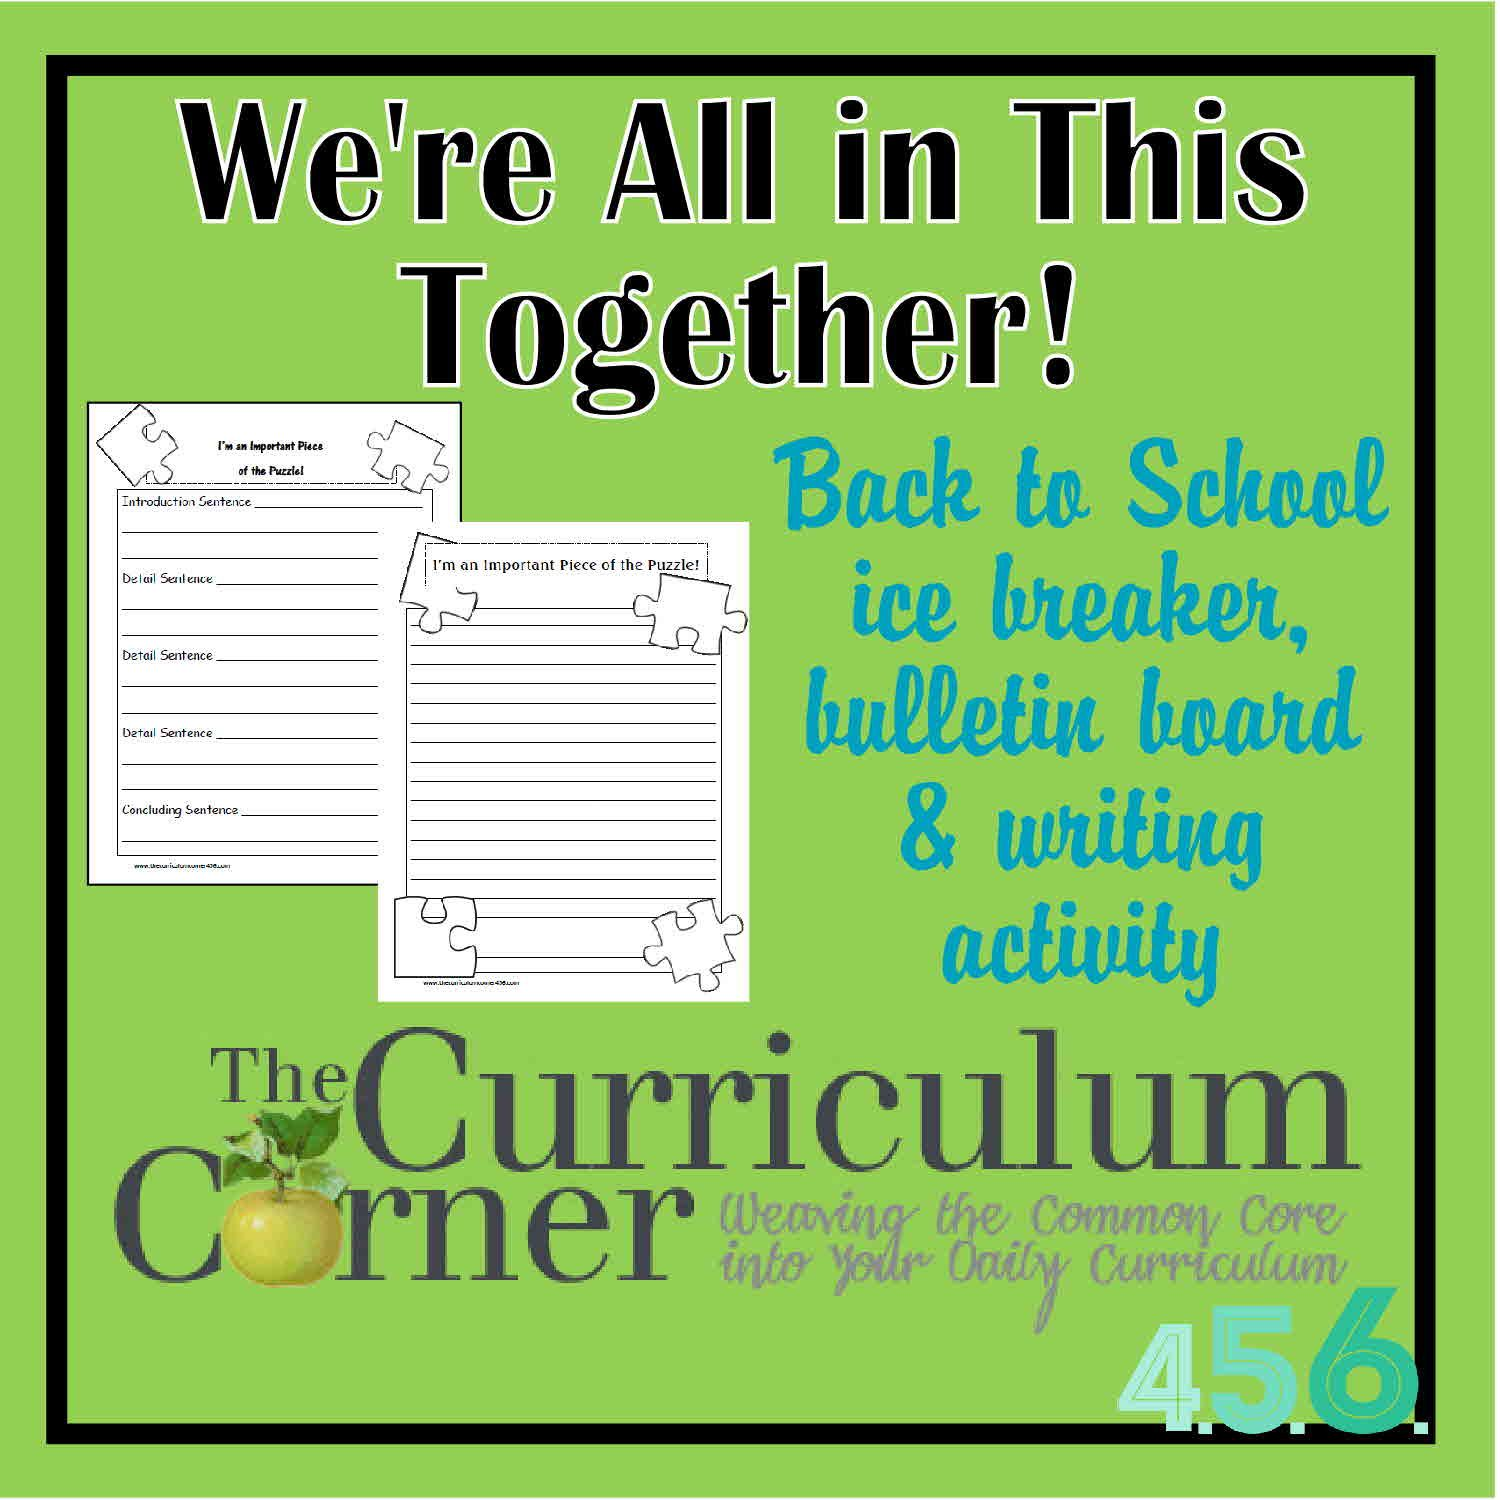 We Re All In This Together Back To School Ice Breaker Bulletin Board Idea Amp Writing Activity